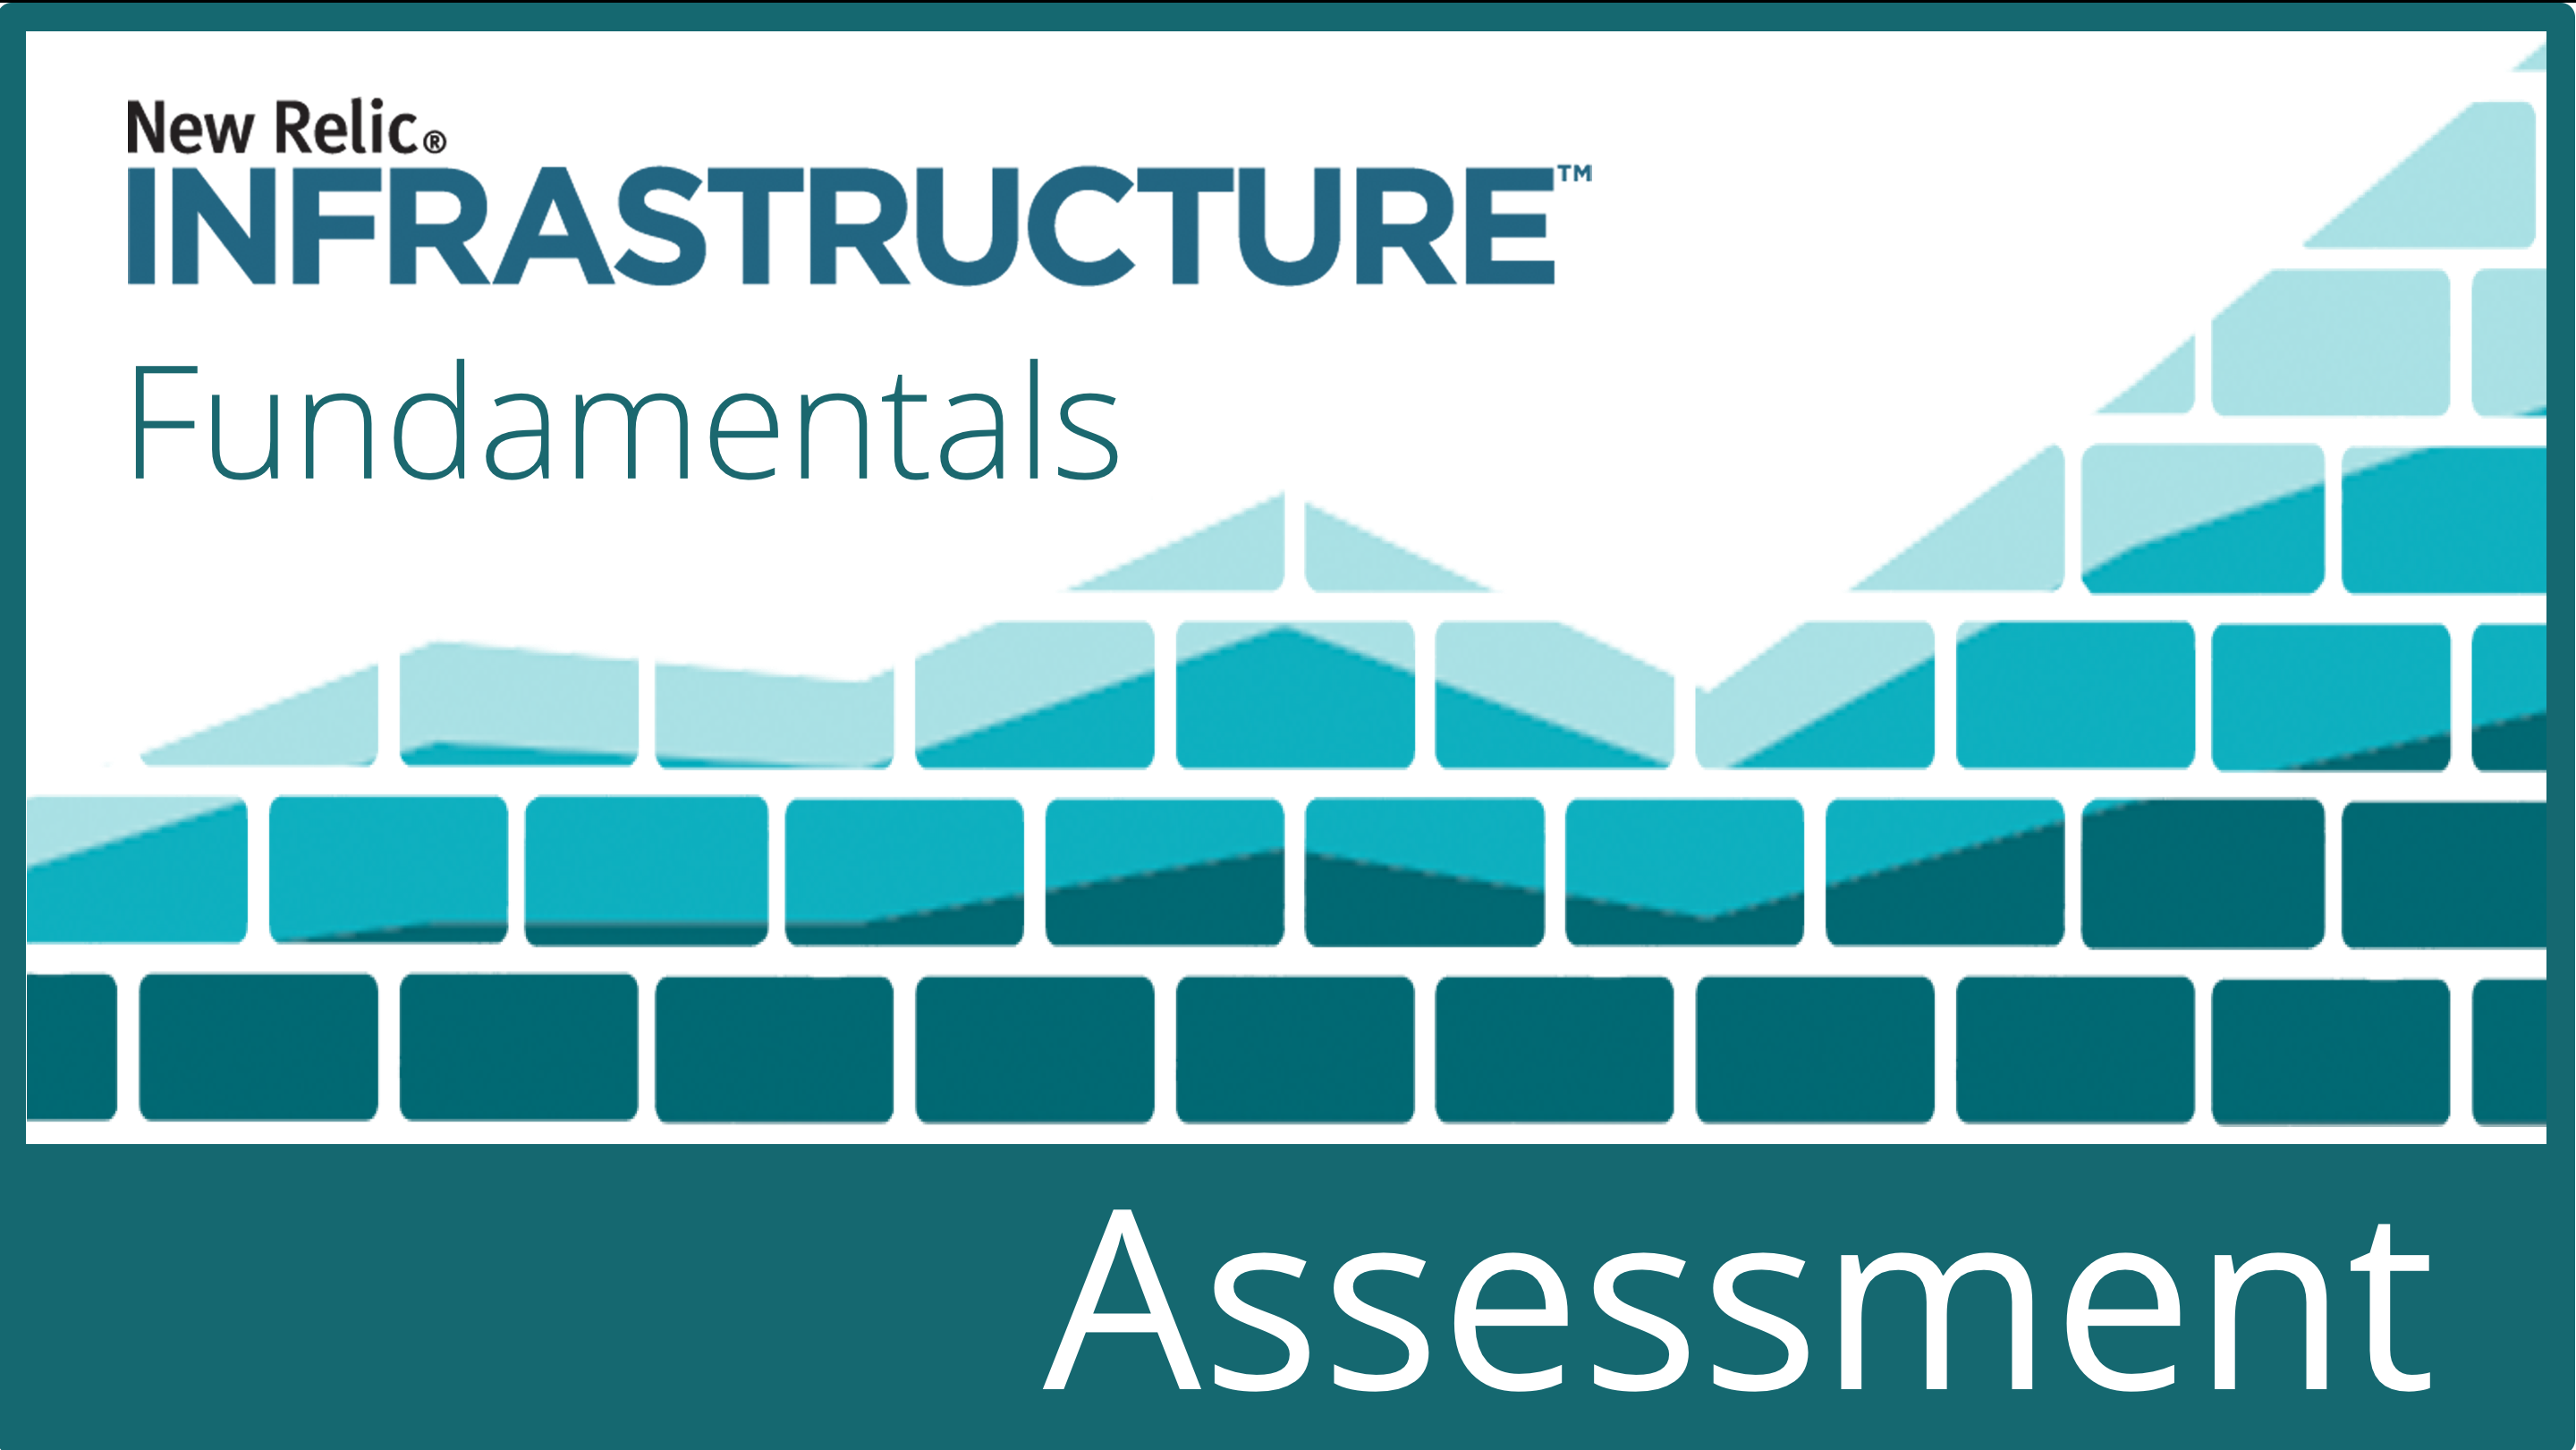 Certification Assessment: New Relic Infrastructure Fundamentals